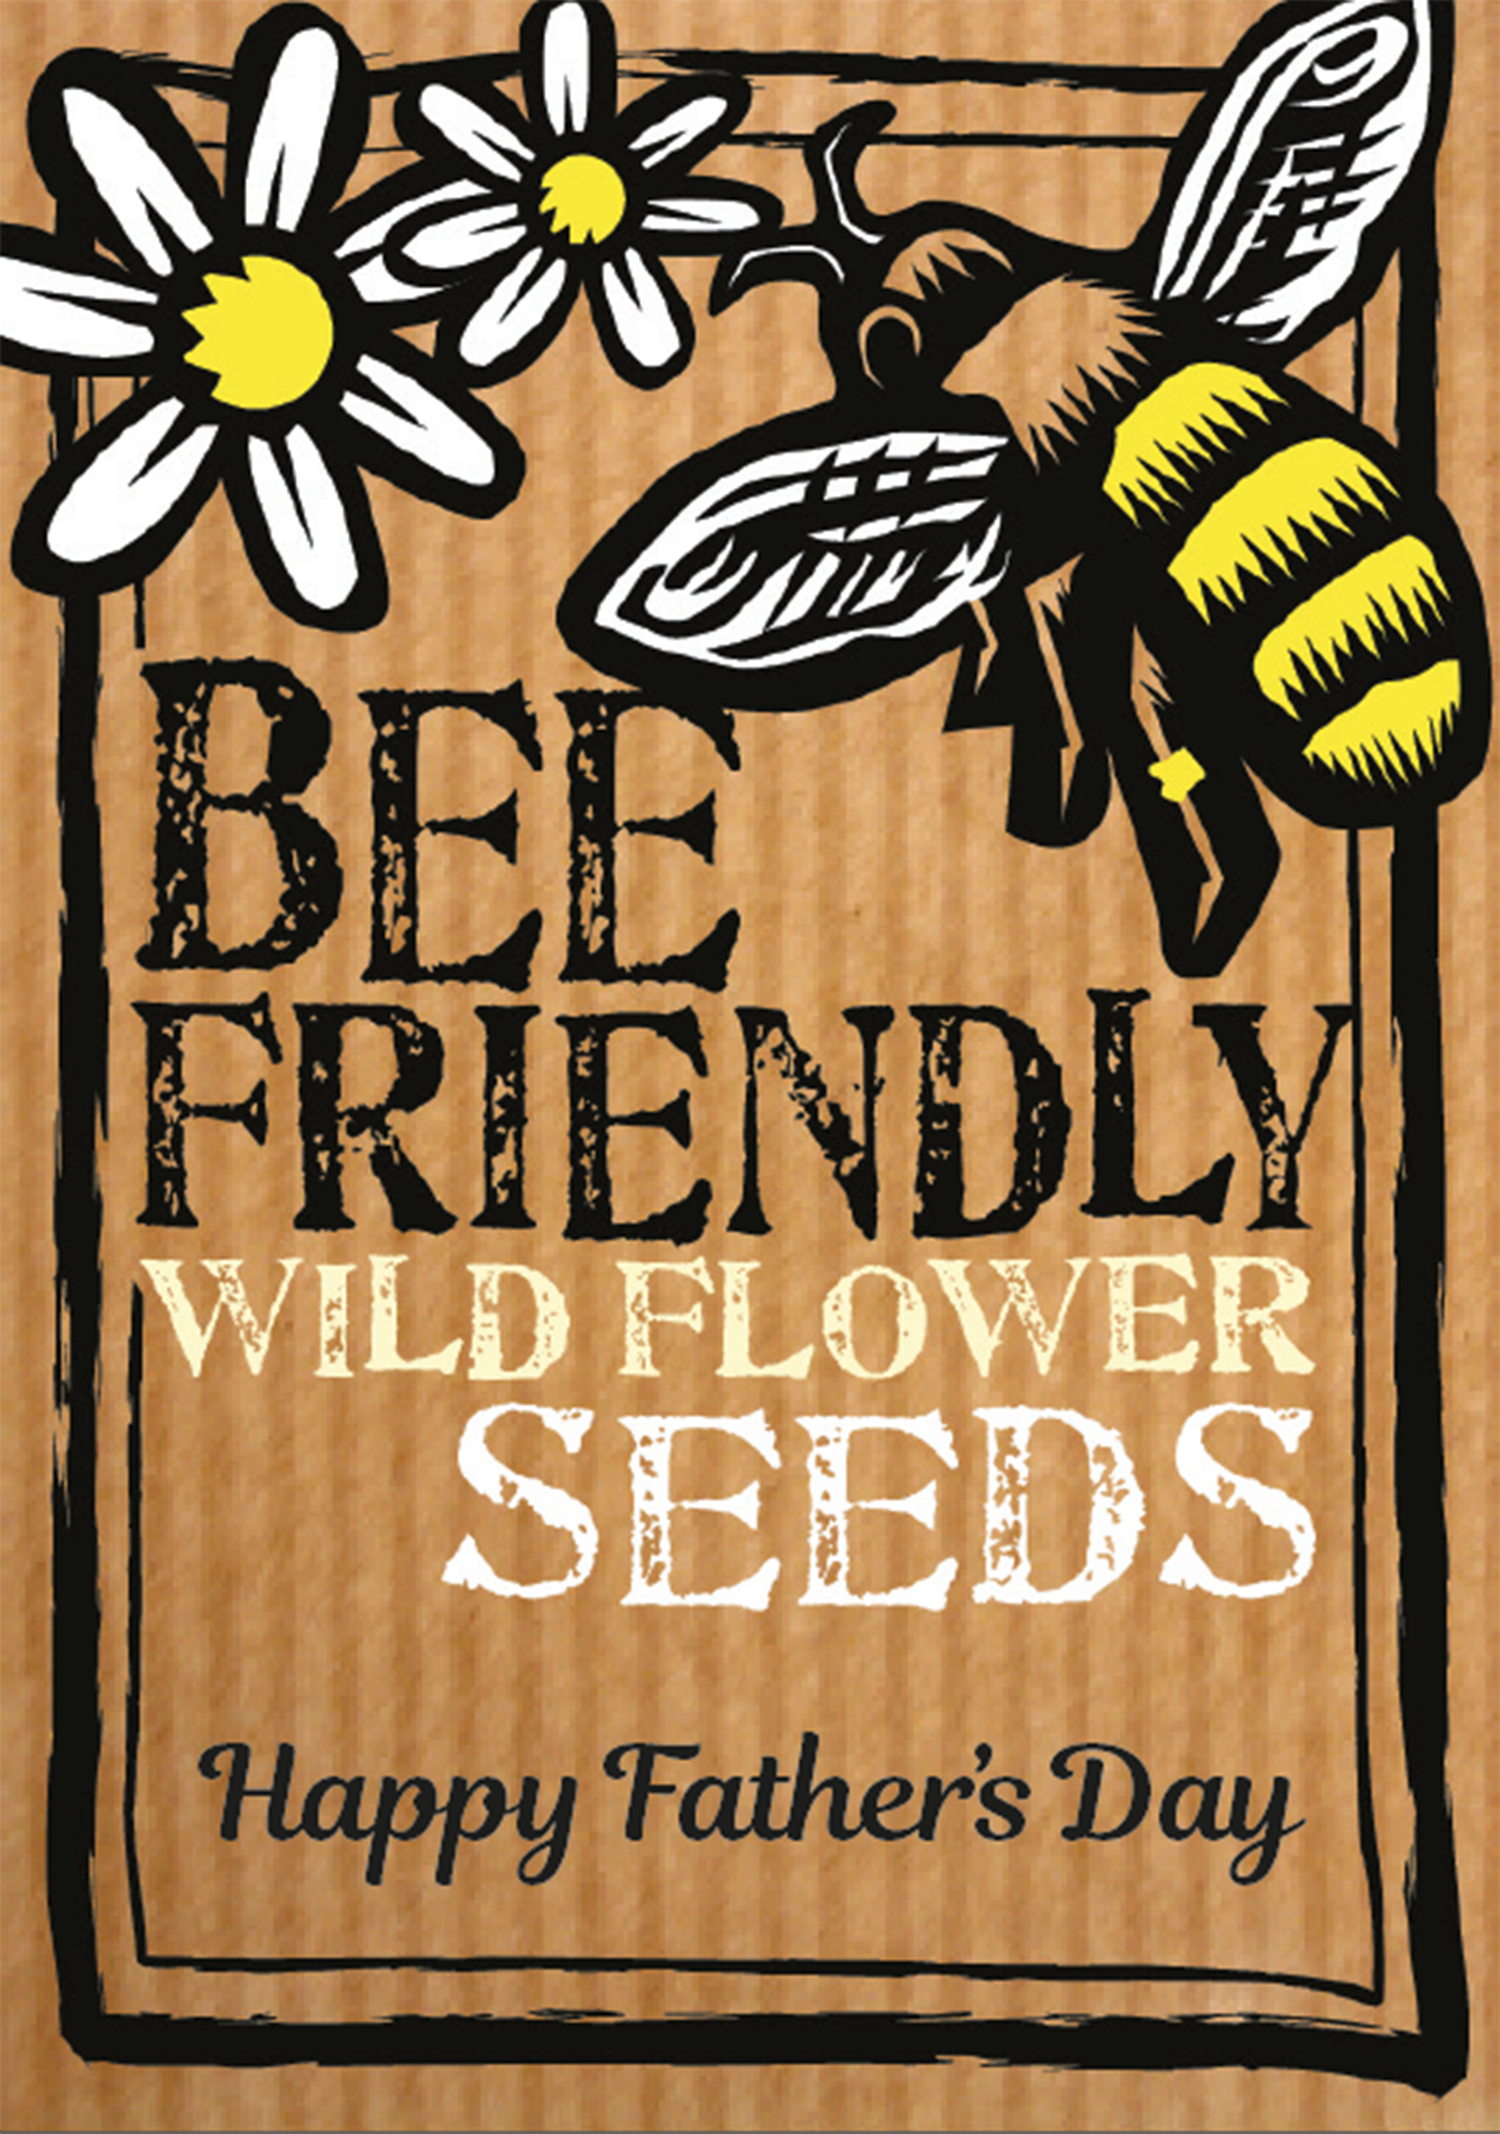 Image of Father's Day Bee-friendly wildflower seeds eco-friendly gift (£3.00 including VAT)